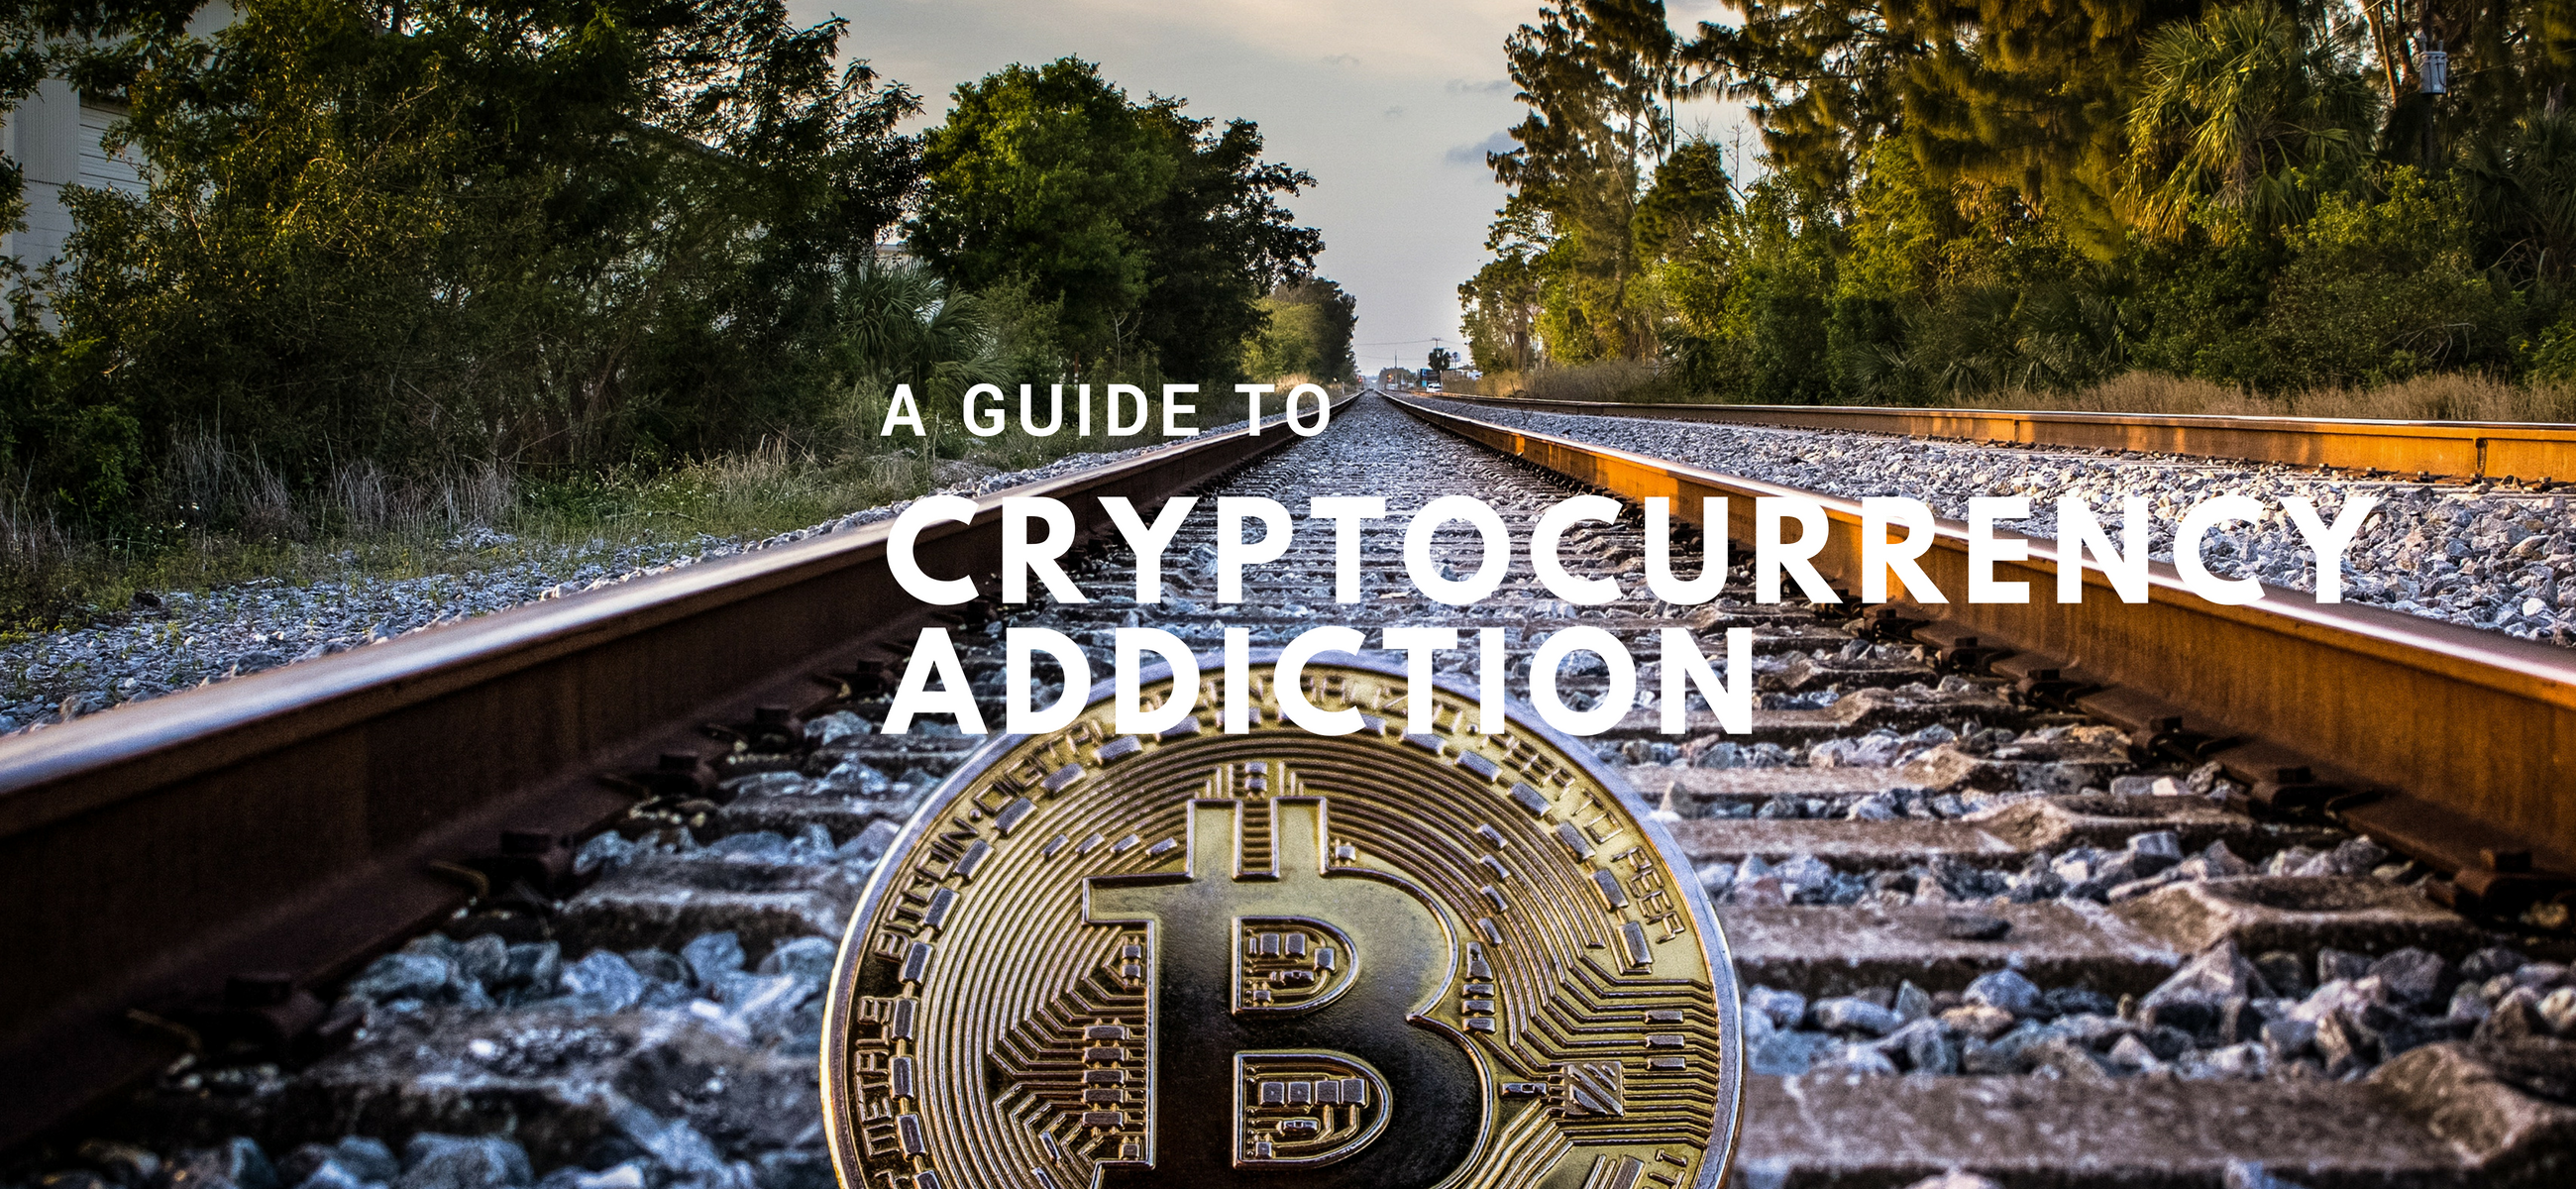 A guide to Bitcoin Addiction from Castle Craig Hospital